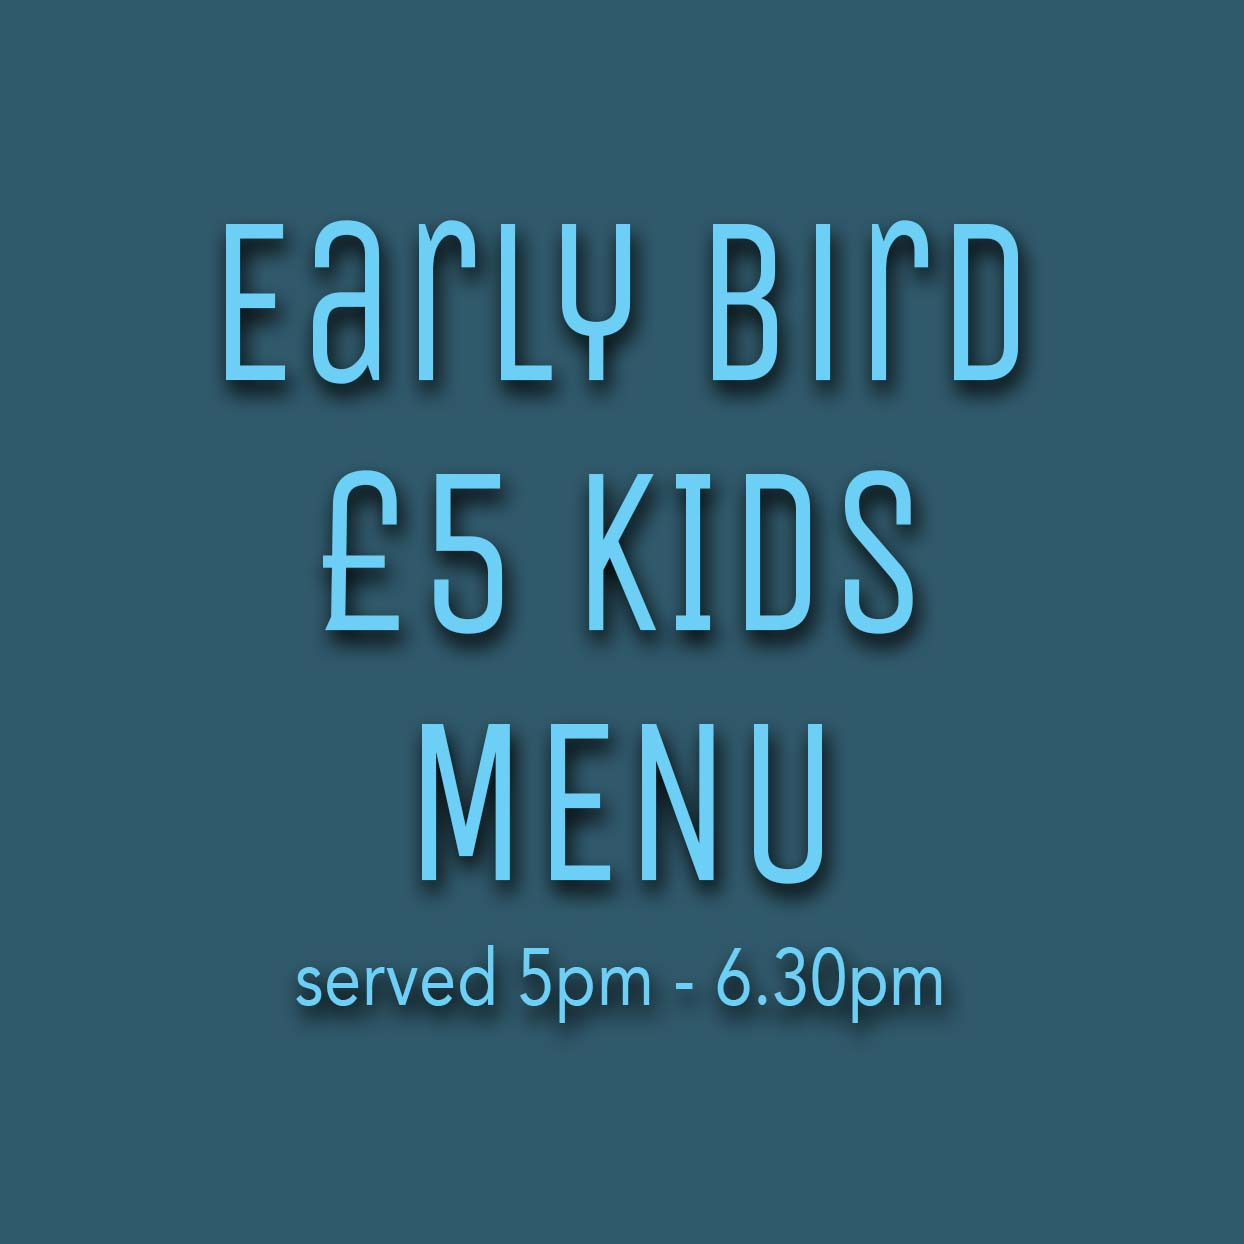 Early Bird Kids Menu Just £5